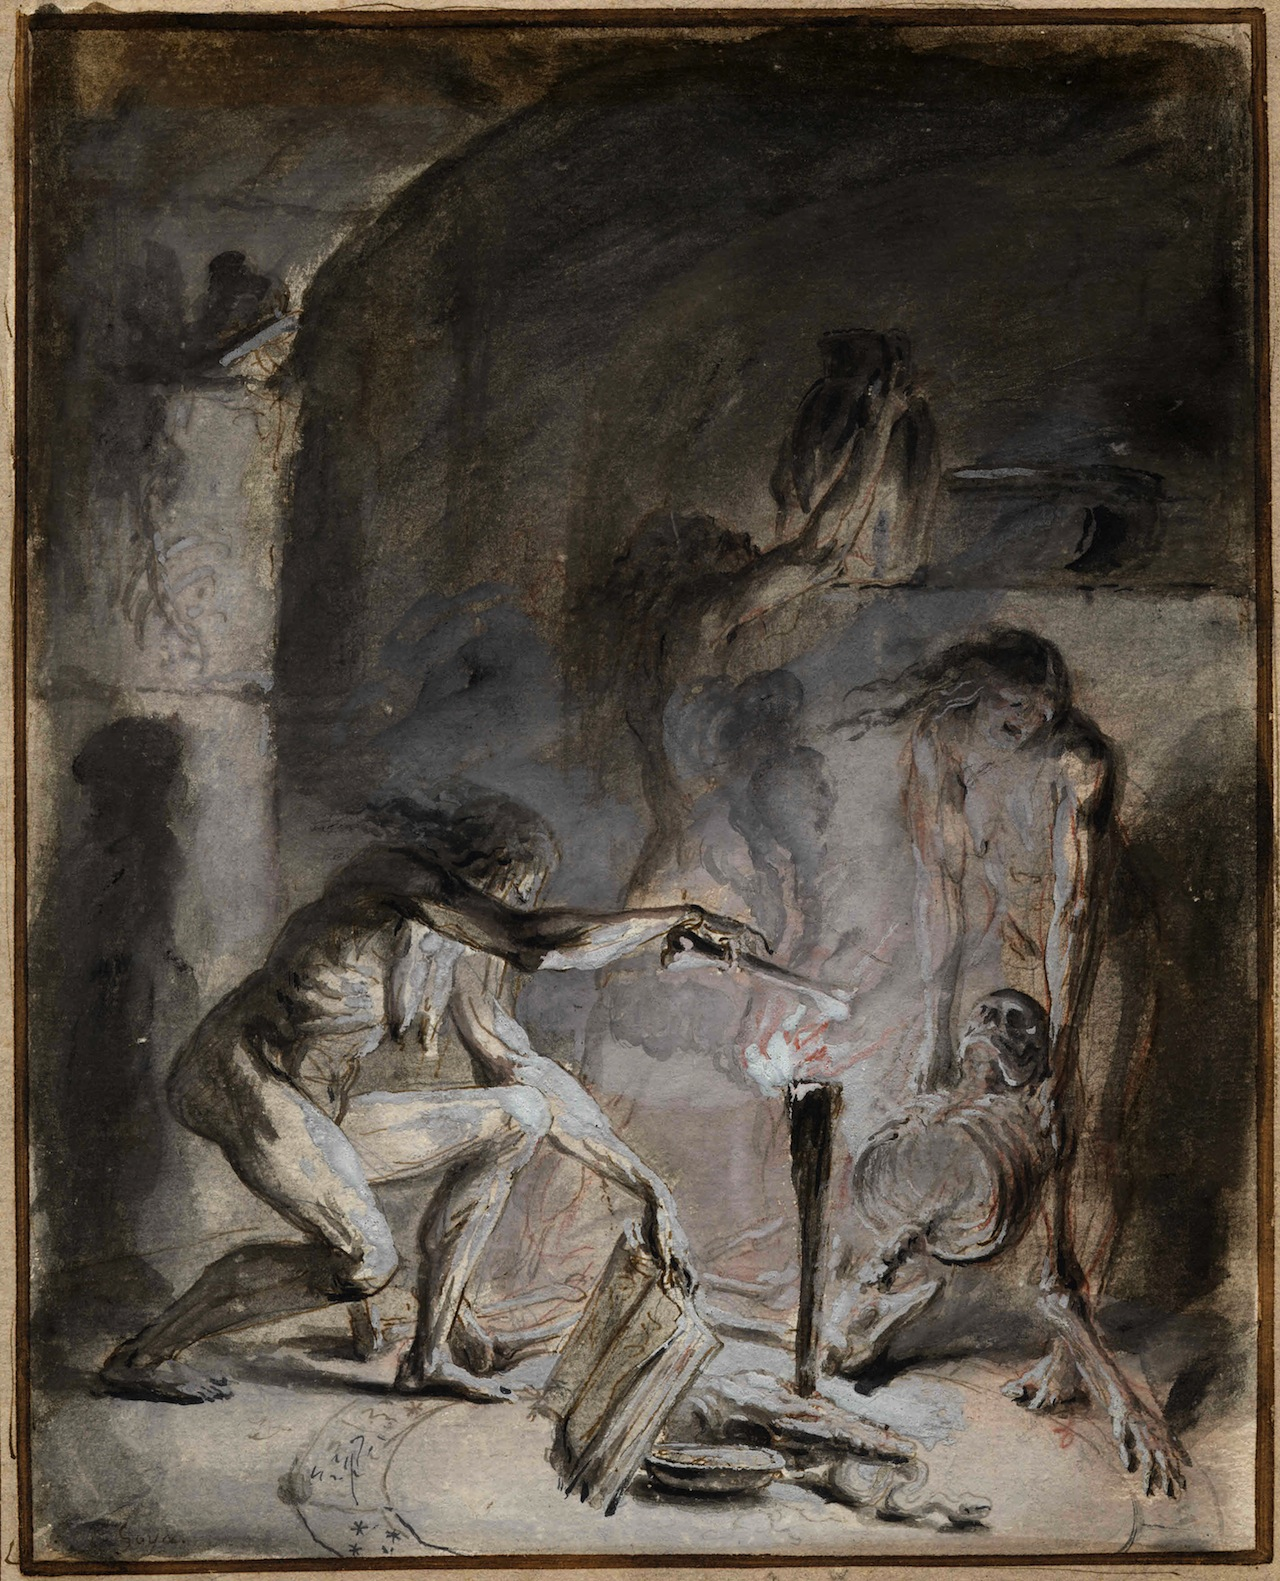 nude witches ... Witchcraft scene, three nude figures in a darkened interior, including  figure at right holding